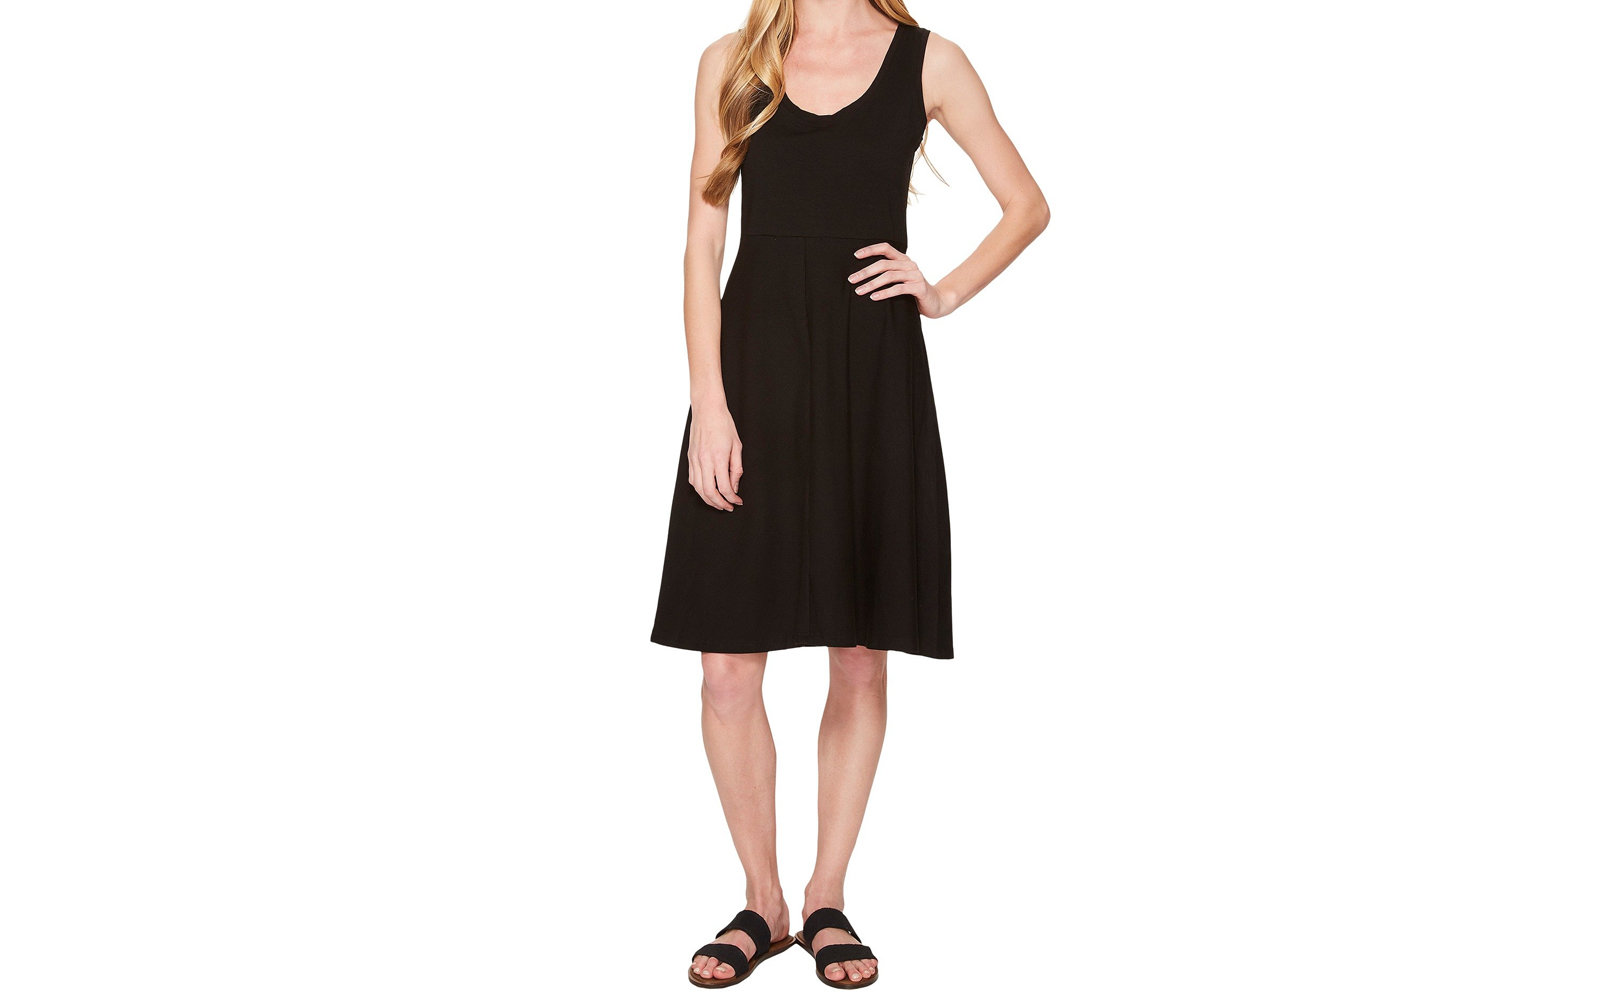 763b814ad9 9 Wrinkle-resistant Dresses for Travel